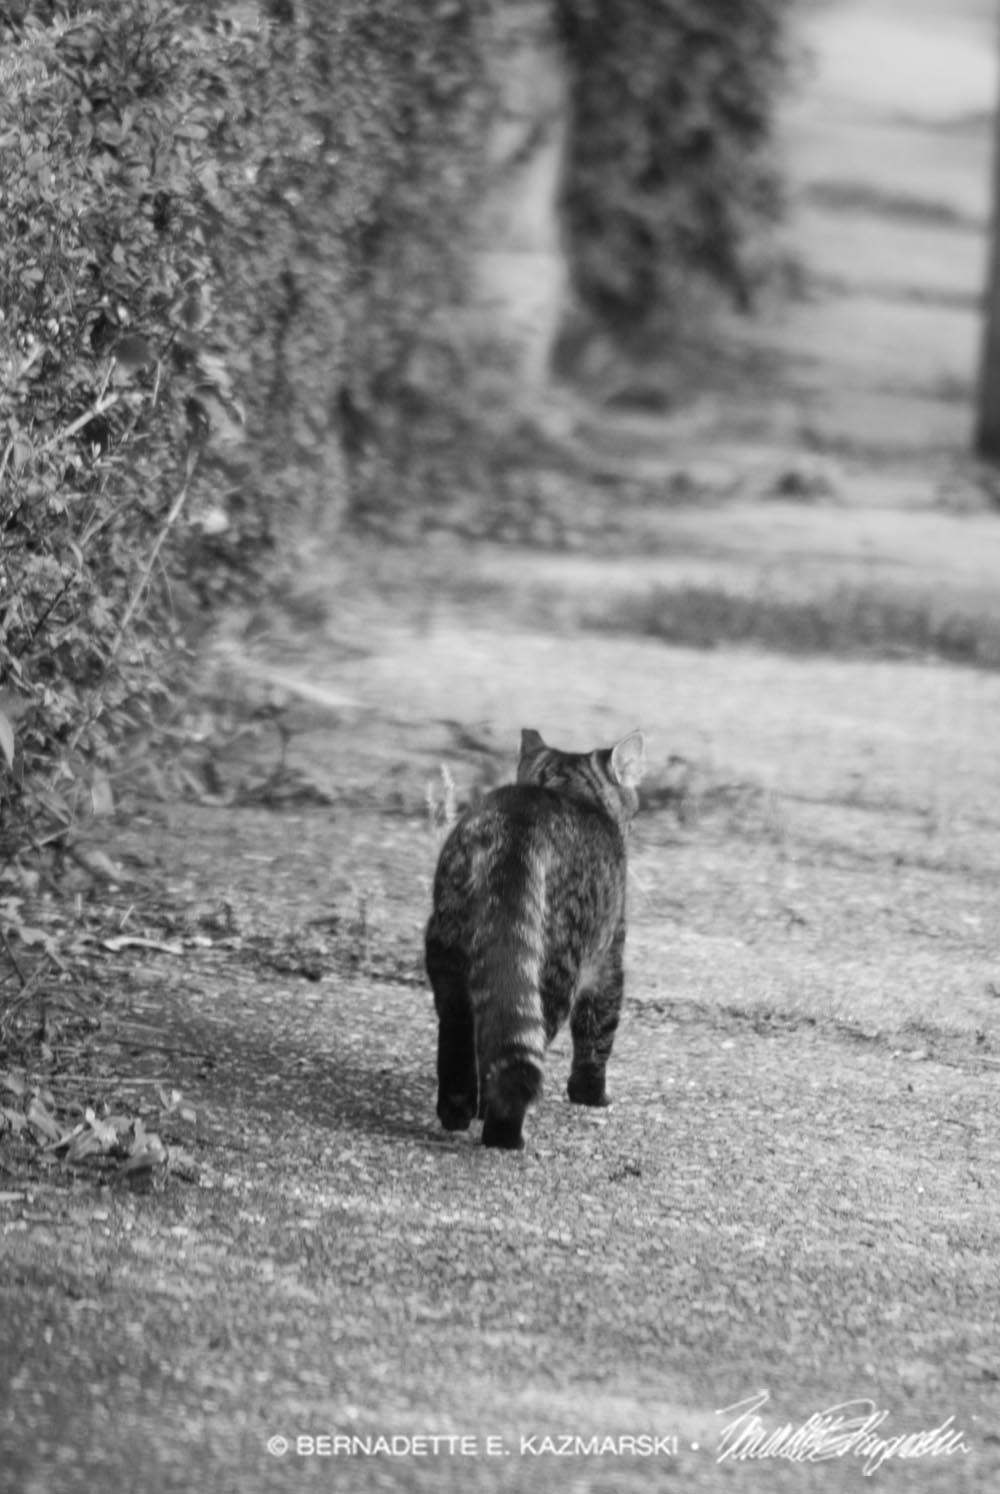 Tabby precedes me down the street, listening behind himself for my step.